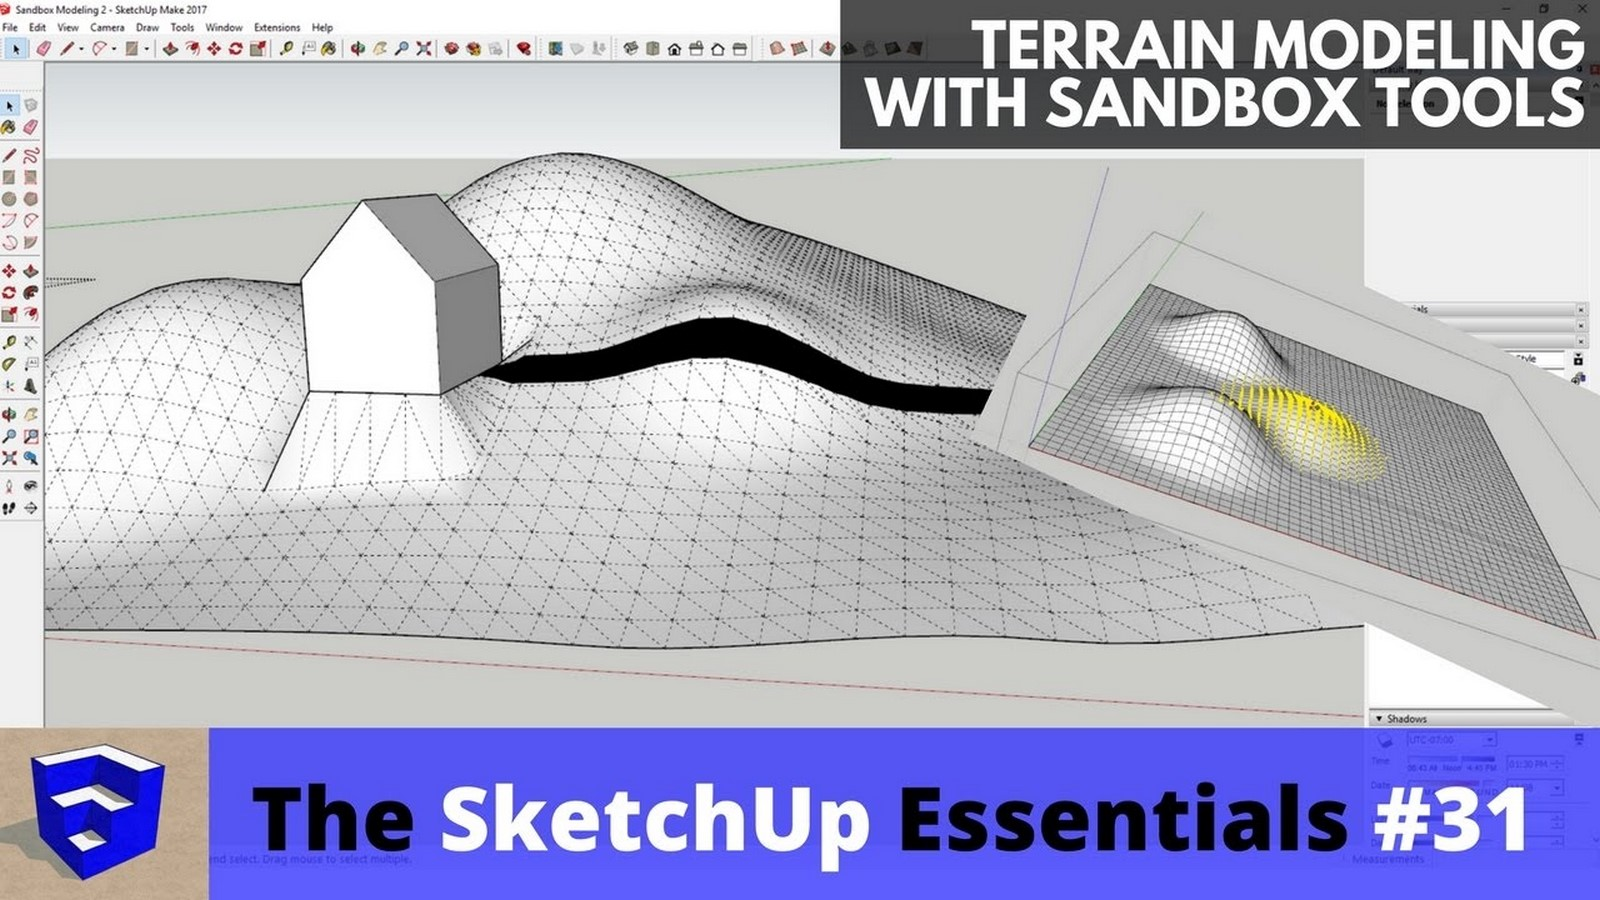 Modelling Terrain and Contours - Sheet1